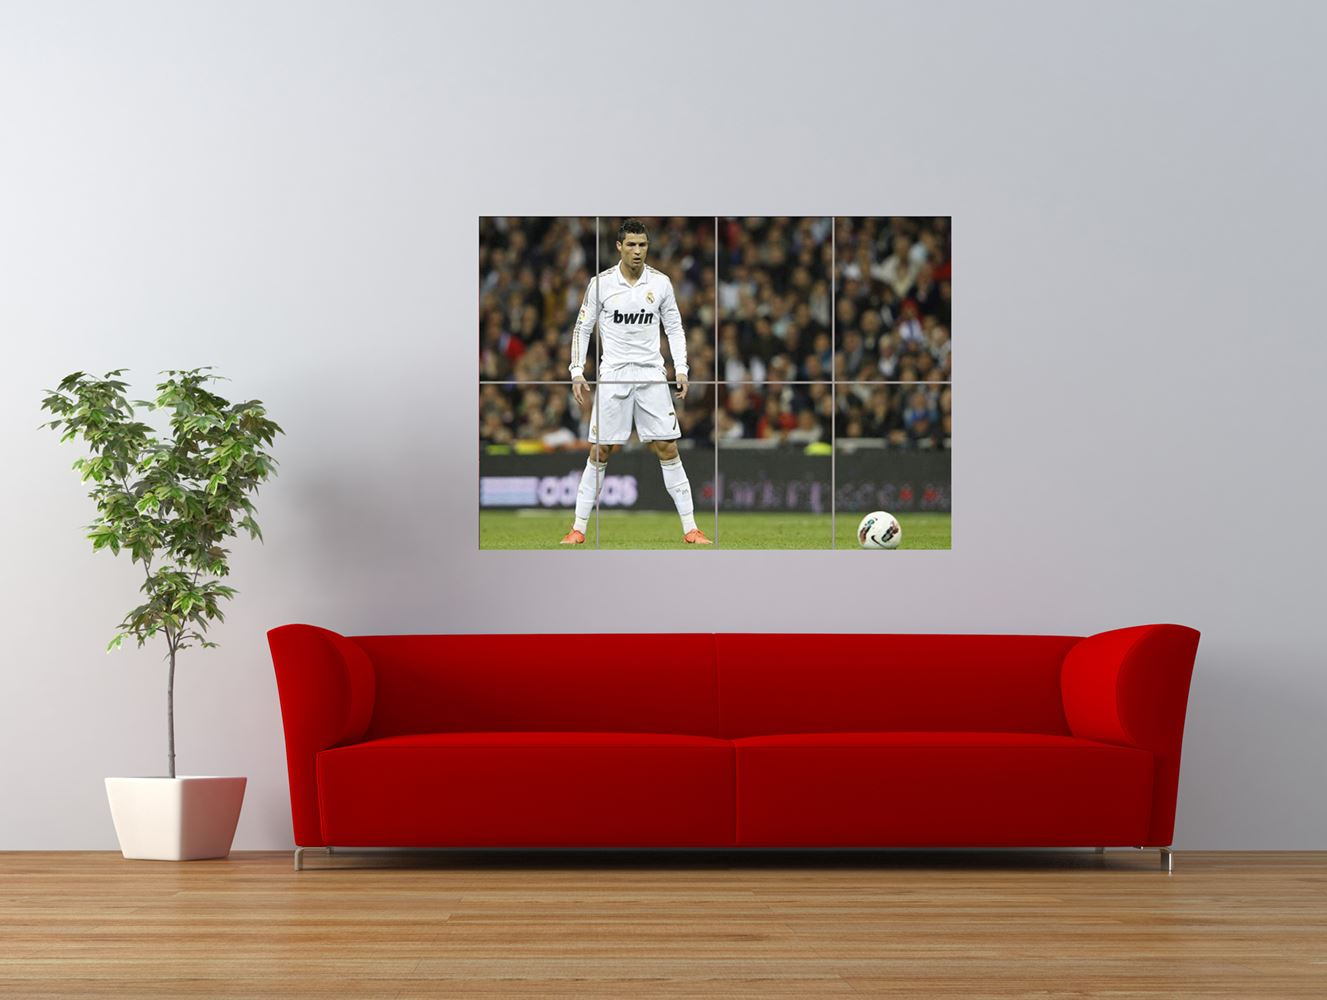 CRISTIANO-RONALDO-REAL-MADRID-FREE-KICK-GIANT-ART-PRINT-PANEL-POSTER-NOR0279